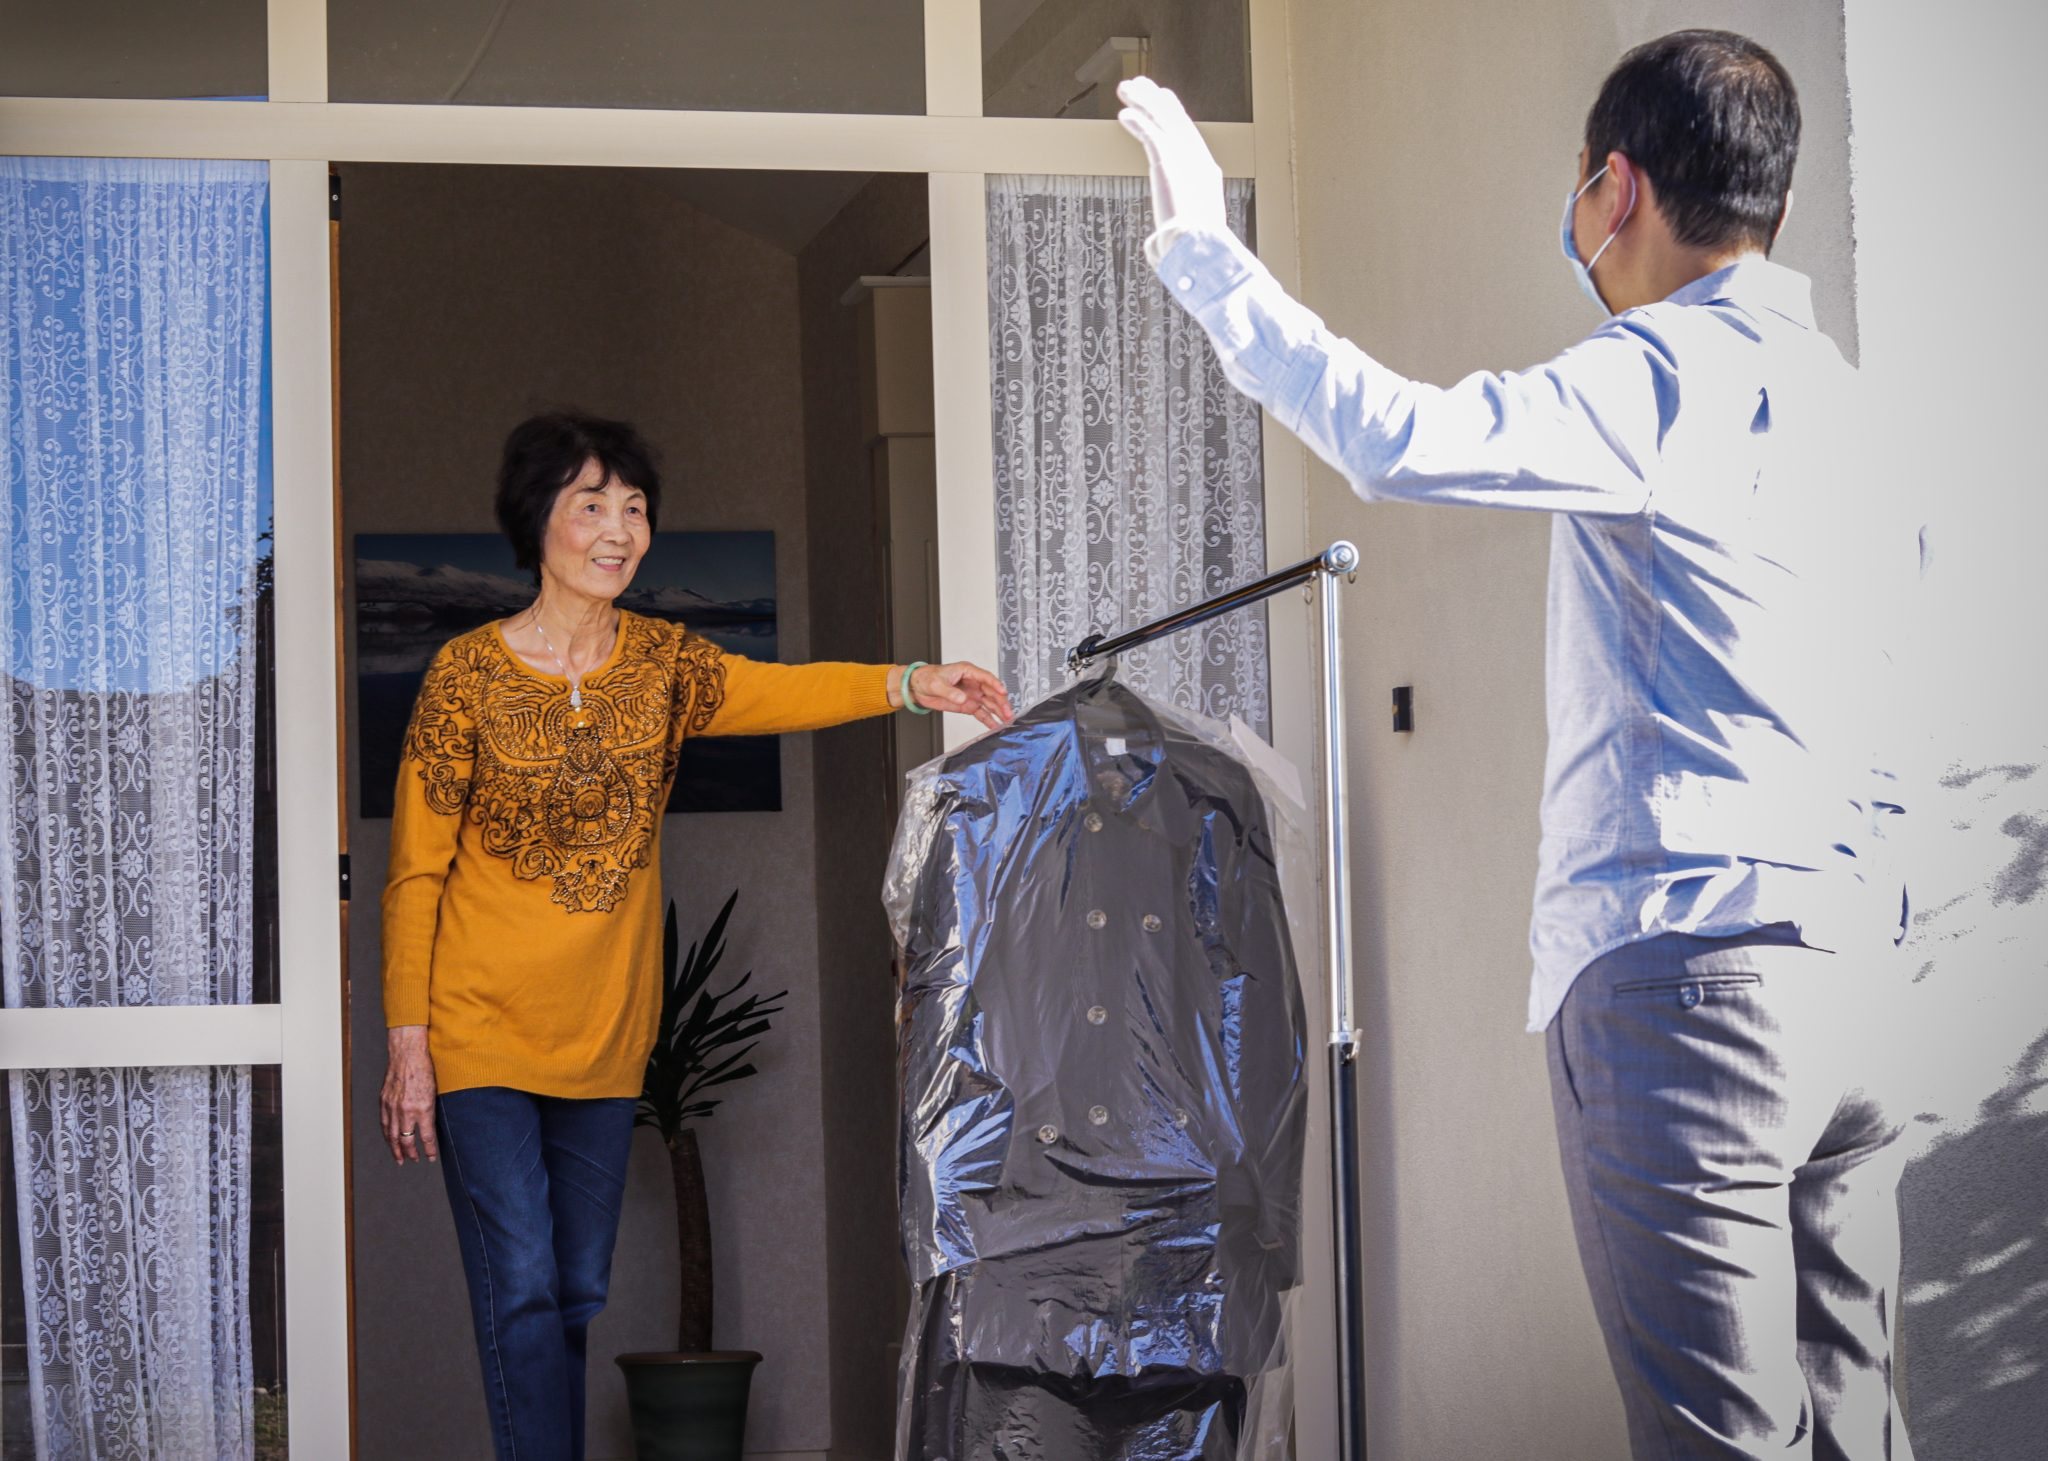 pickup delivery dropoff service drycleaning cleaning covid-19 contactless